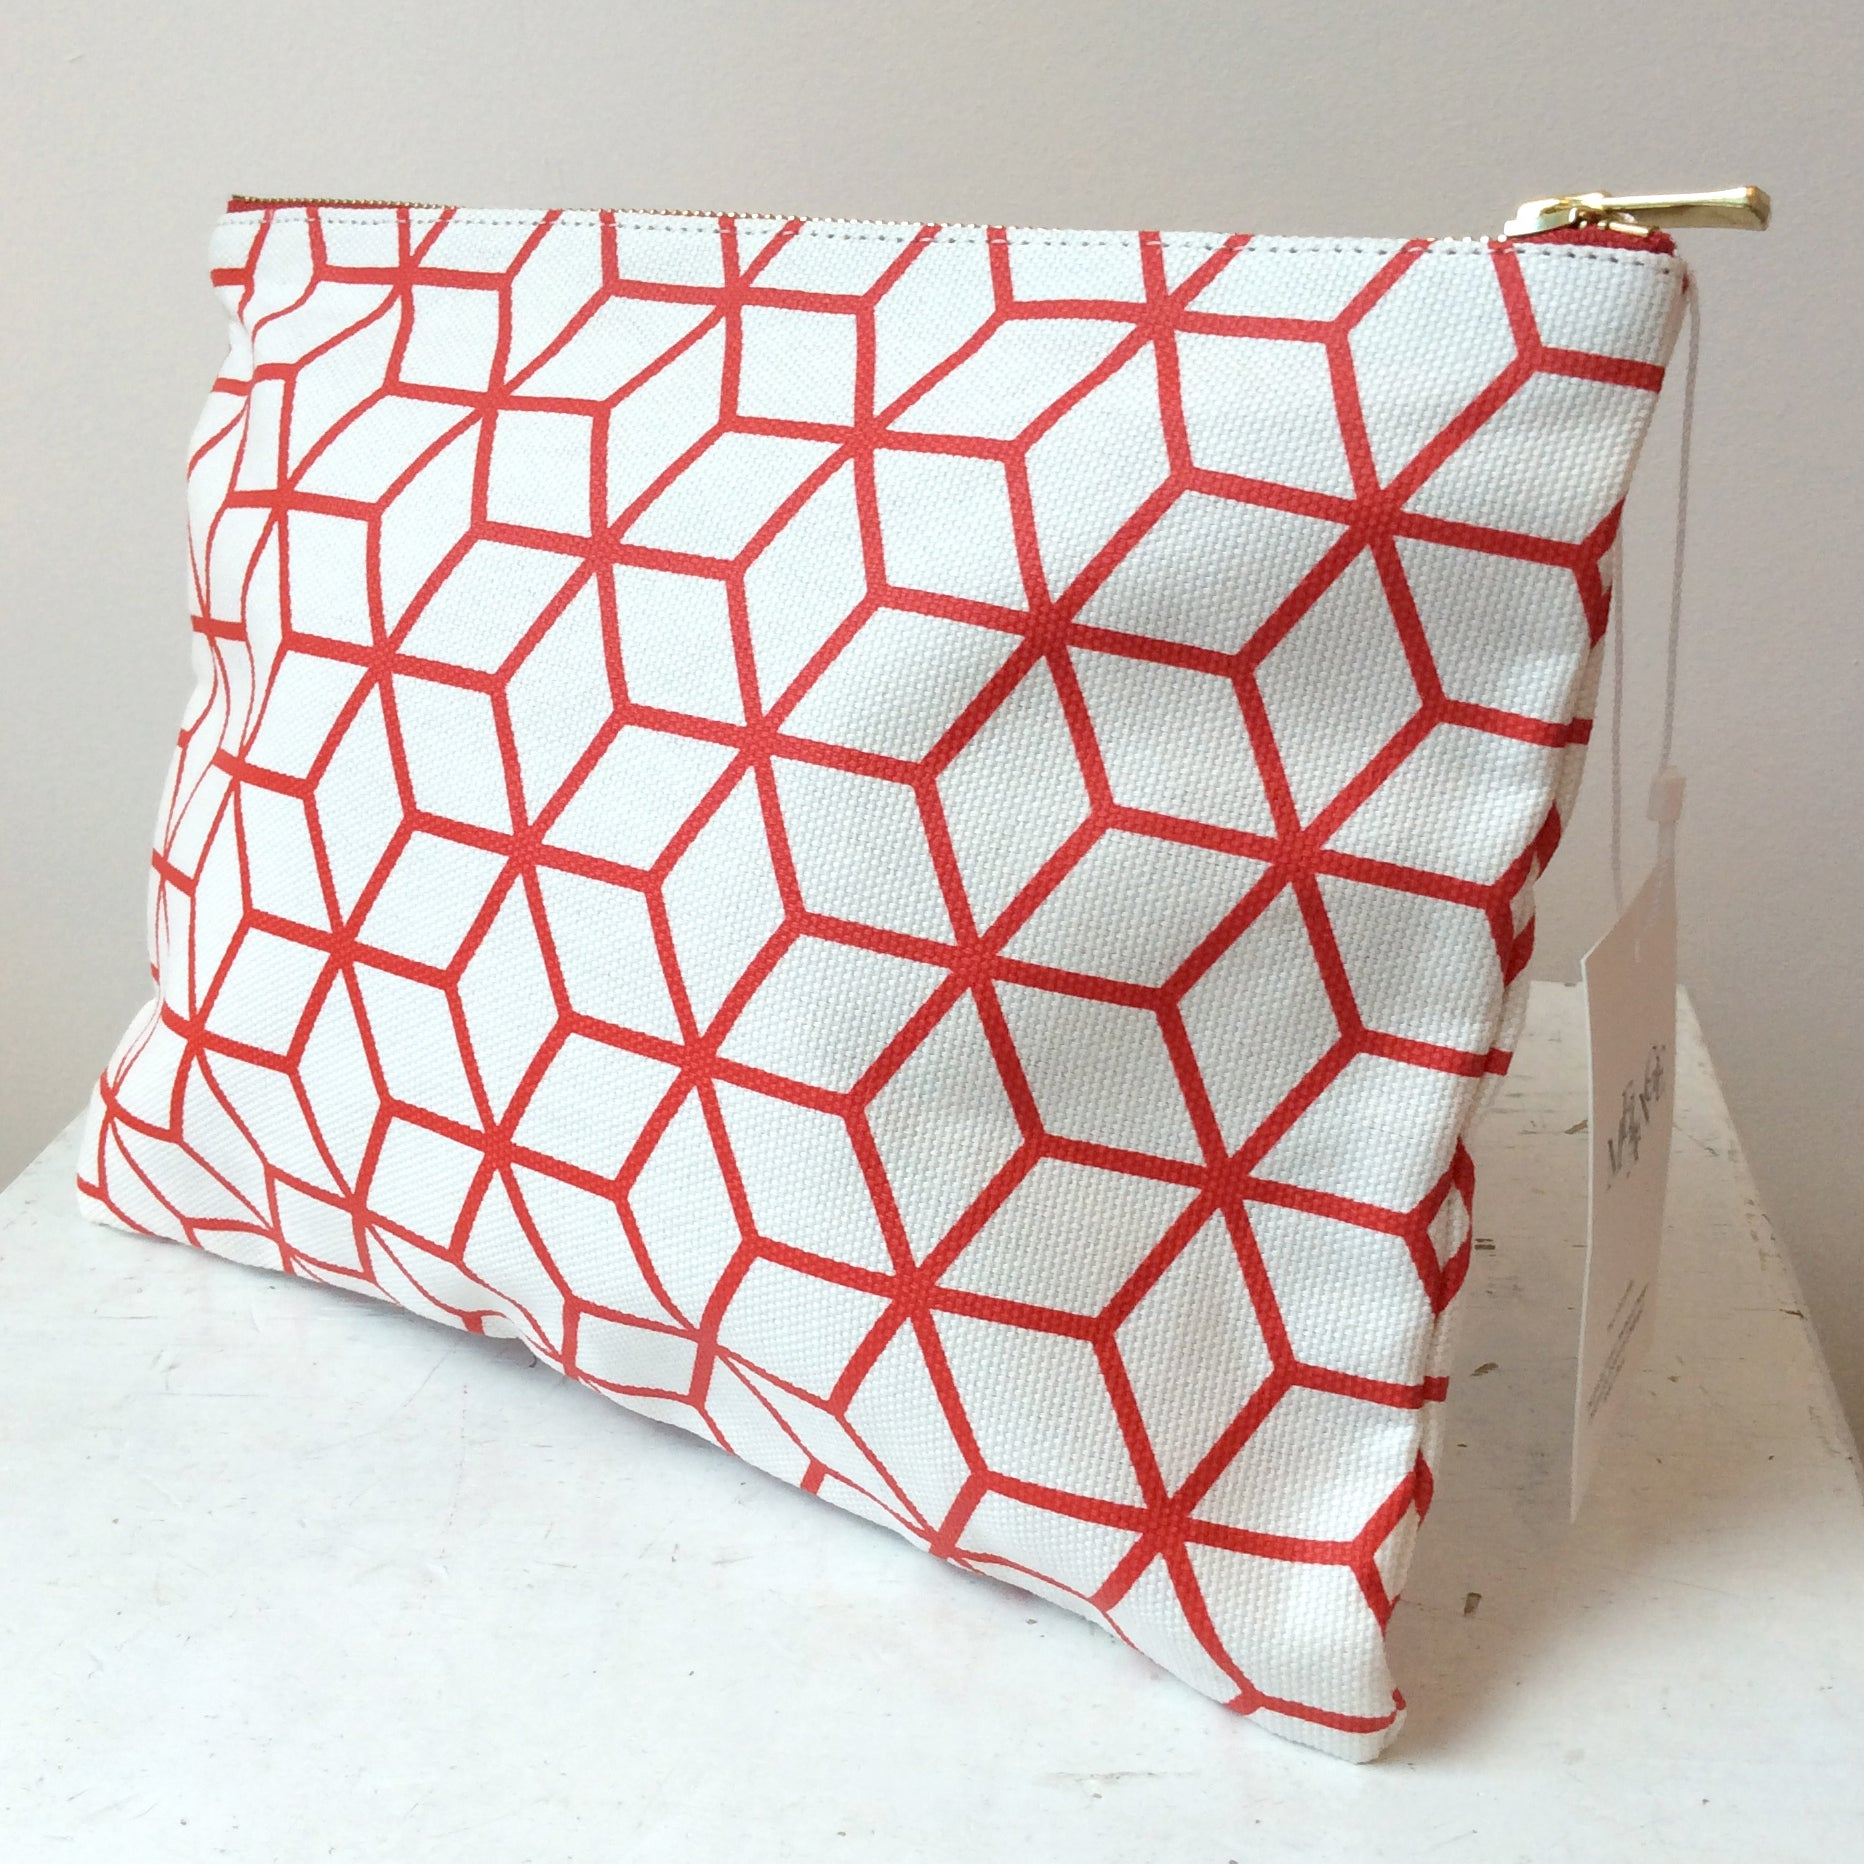 RANEE & COMPANY RED CUBE PURSE